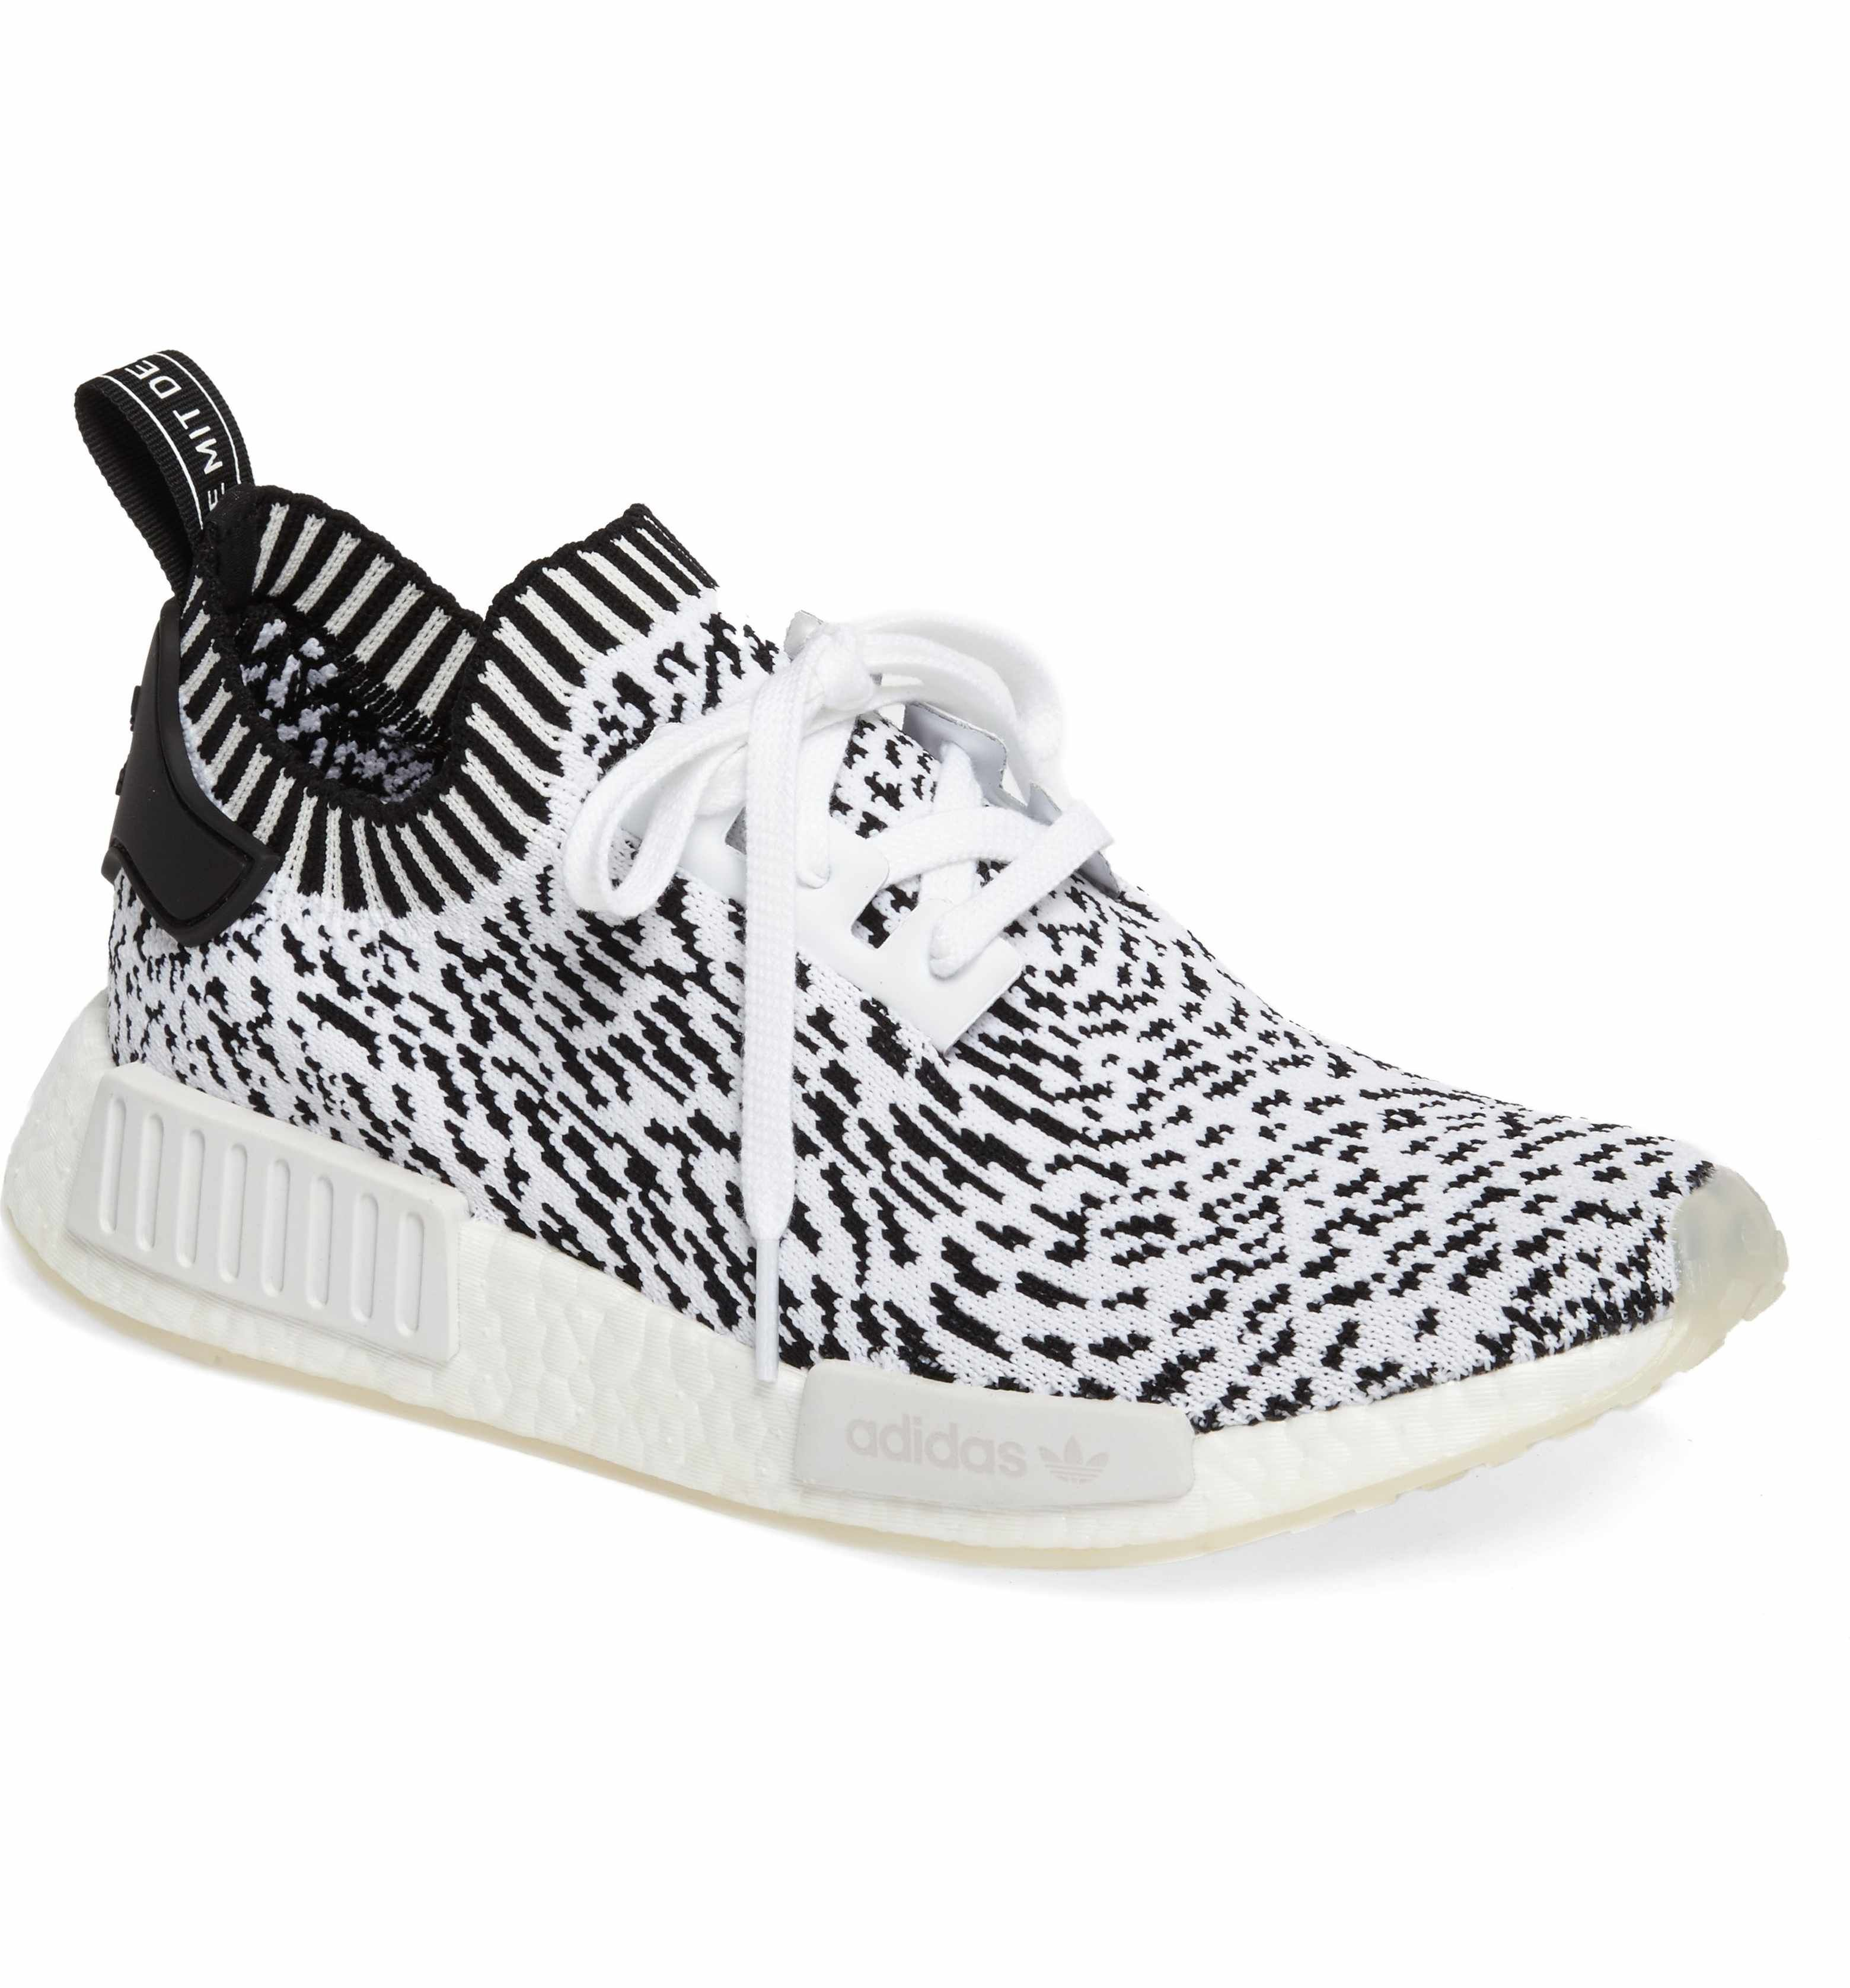 adidas NMD R1 Primeknit Sneaker (Men Chaussures de course nike  Running shoes nike